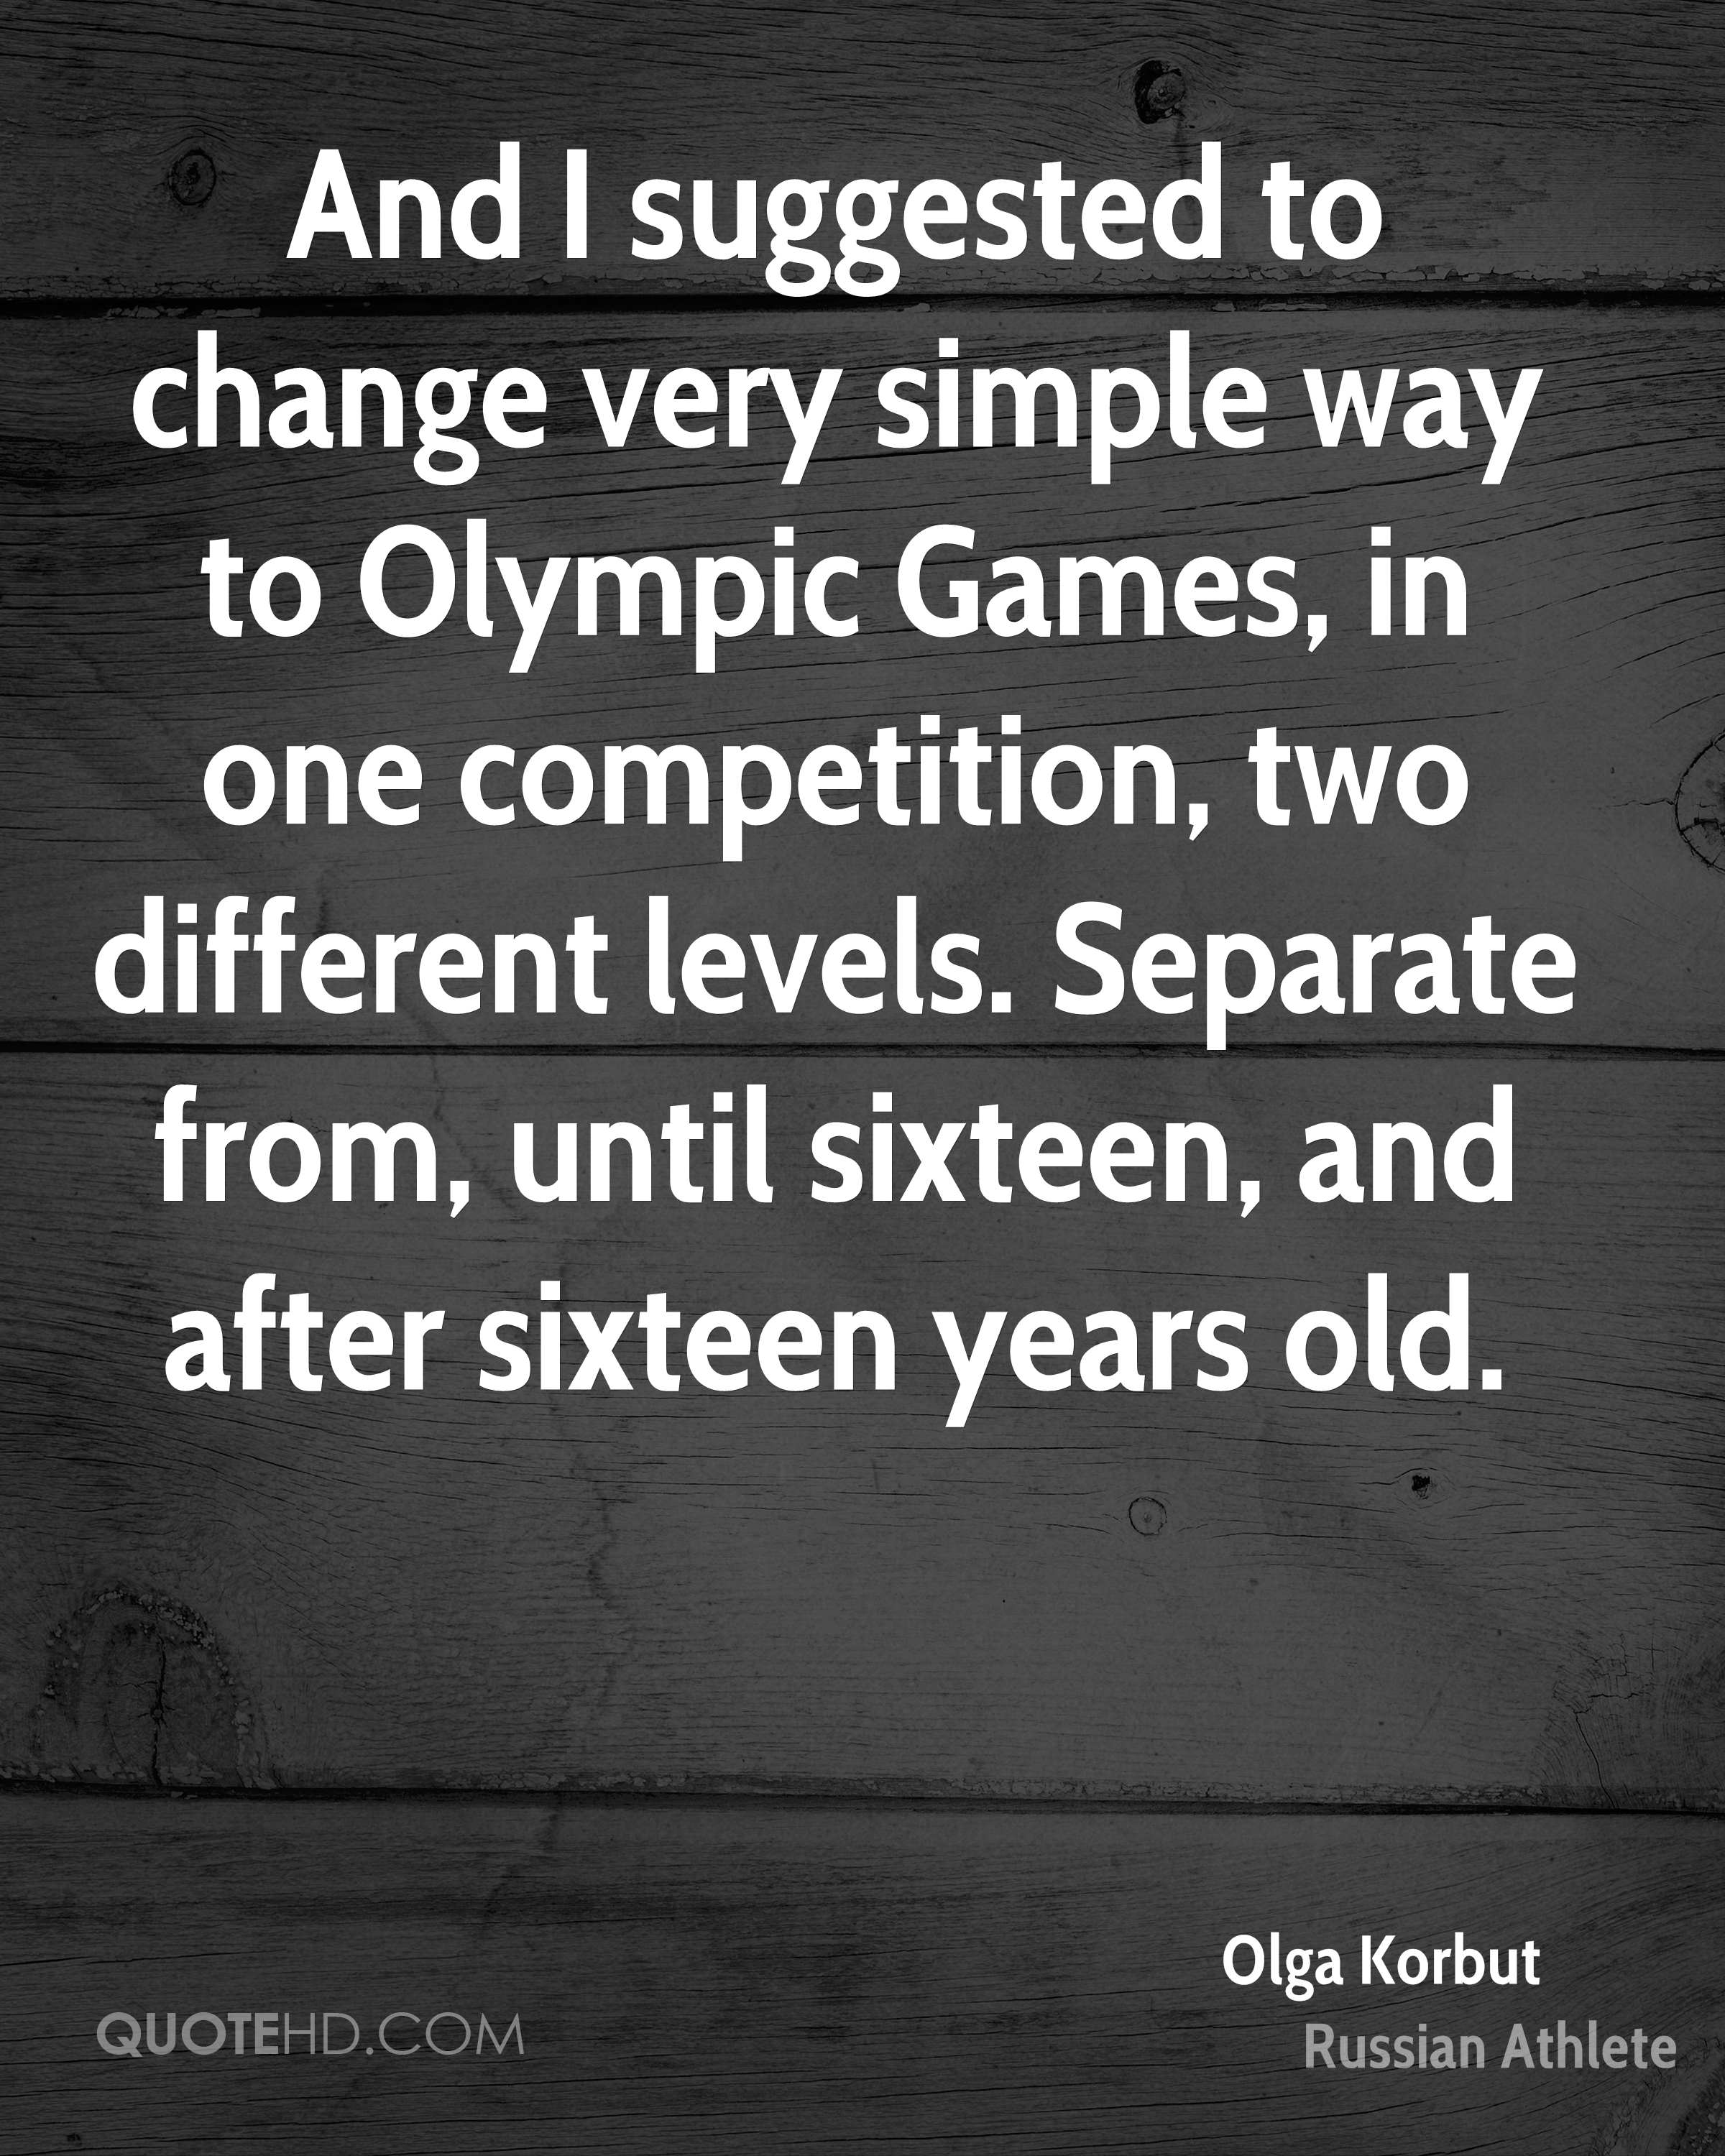 And I suggested to change very simple way to Olympic Games, in one competition, two different levels. Separate from, until sixteen, and after sixteen years old.